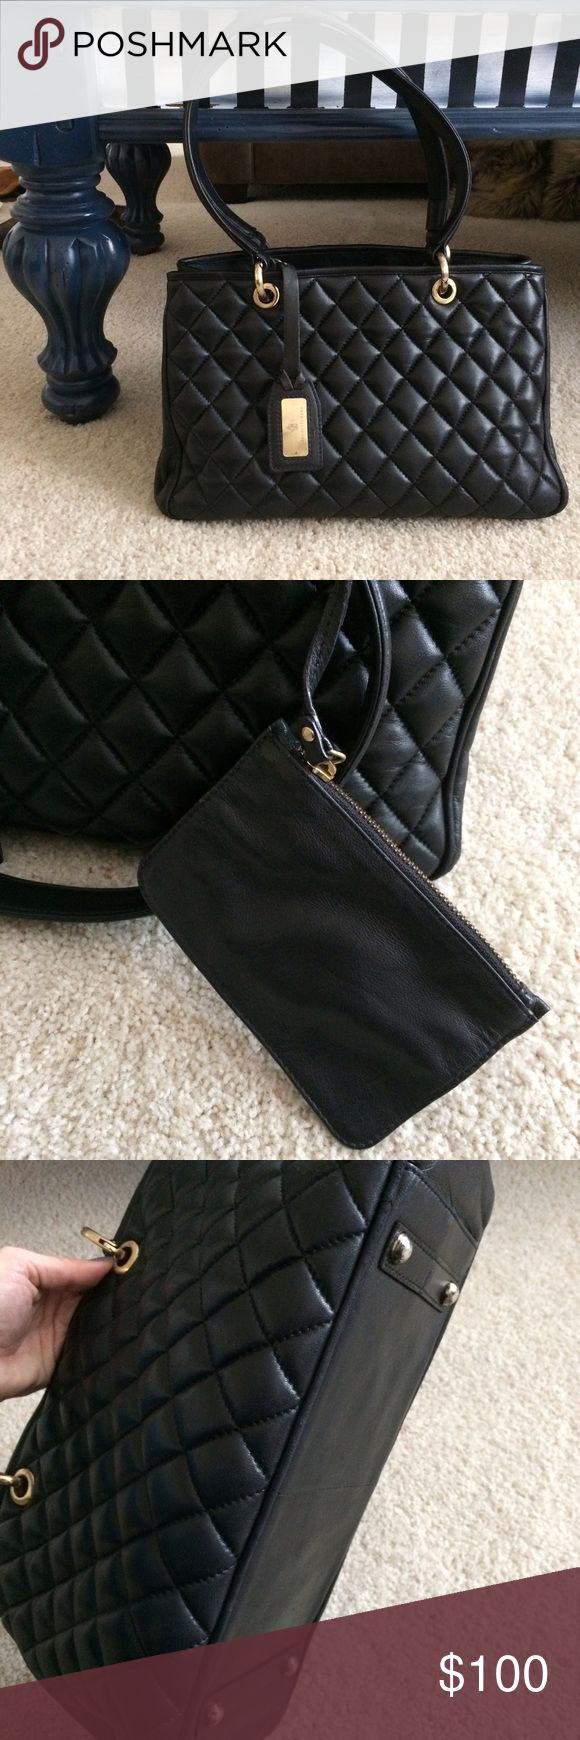 Franchetti Bond quilted leather shoulder bag Italian designer, very high quality leather. Recently had whole bag refinished, flawless black  gently loved, suede interior is clean with a few small blemishes. Gold hardware shows signs of wear, one of the rings is loose. Still works though. Franchetti Bond Bags Shoulder Bags